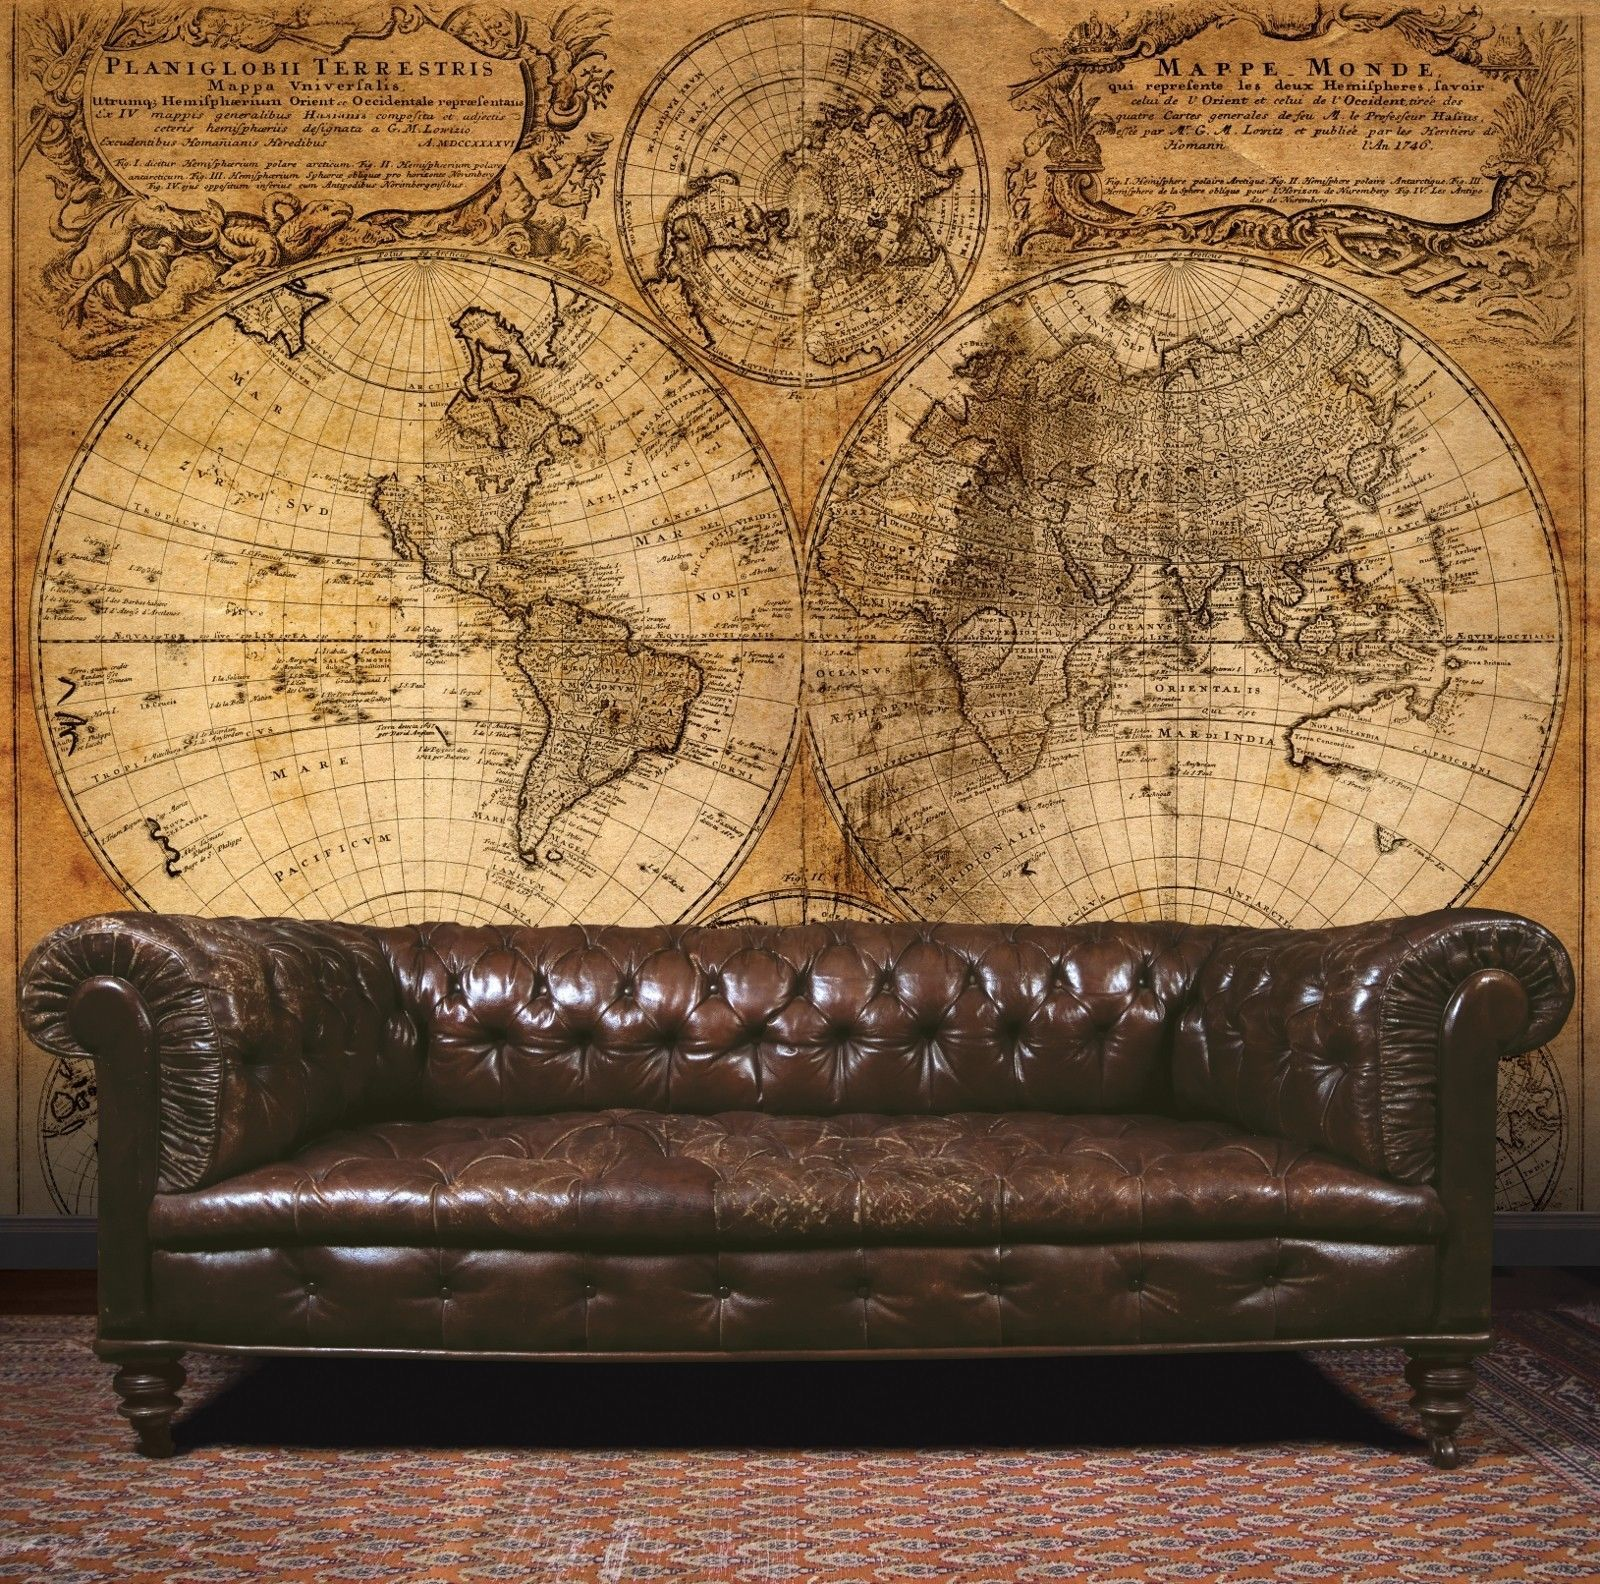 essener mural wallpaper g45253 steampunk map room wall panel photo fleece in home furniture. Black Bedroom Furniture Sets. Home Design Ideas